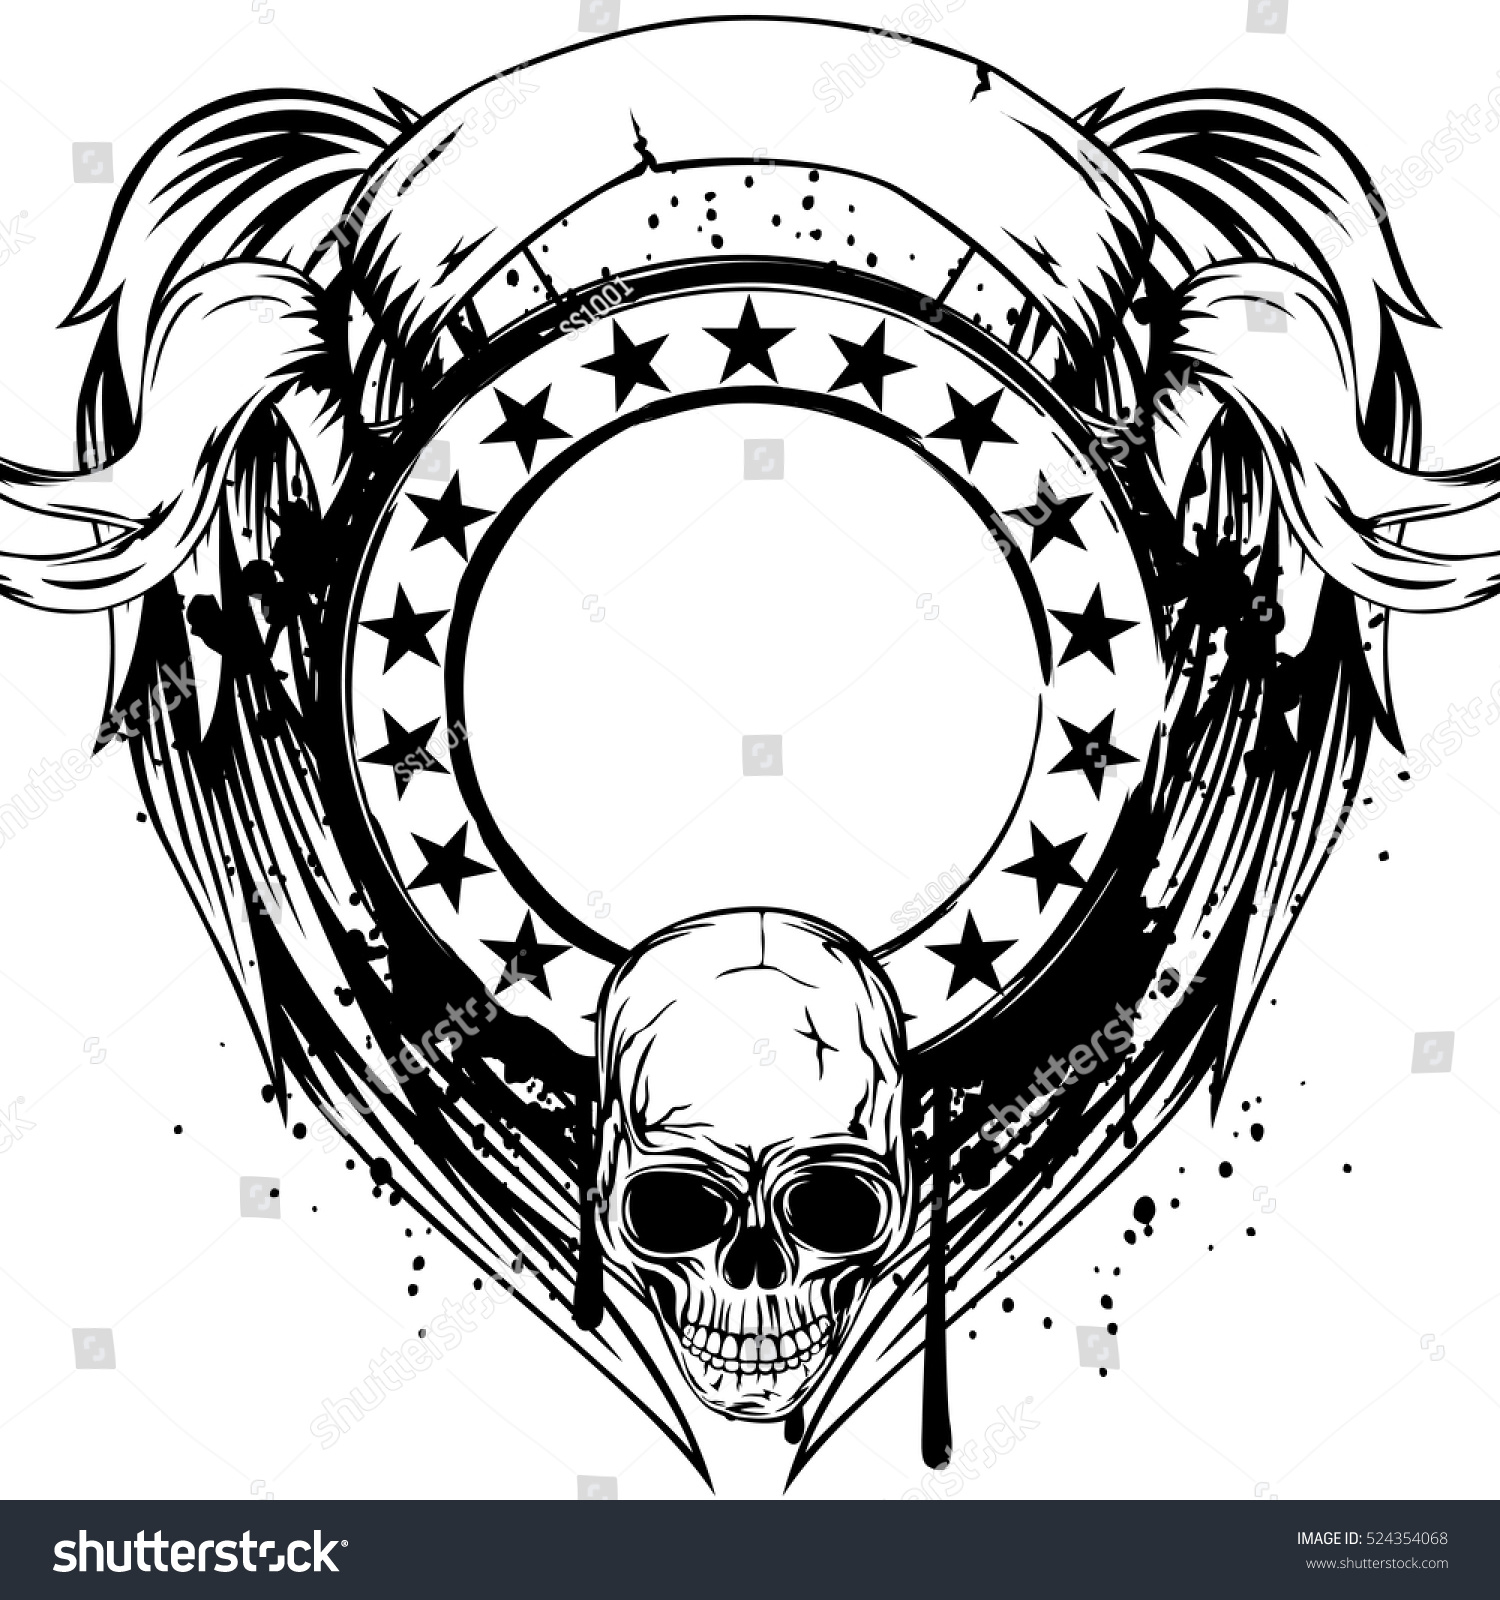 Vector Illustration Skull Frame Stars On Stock Vector (2018 ...